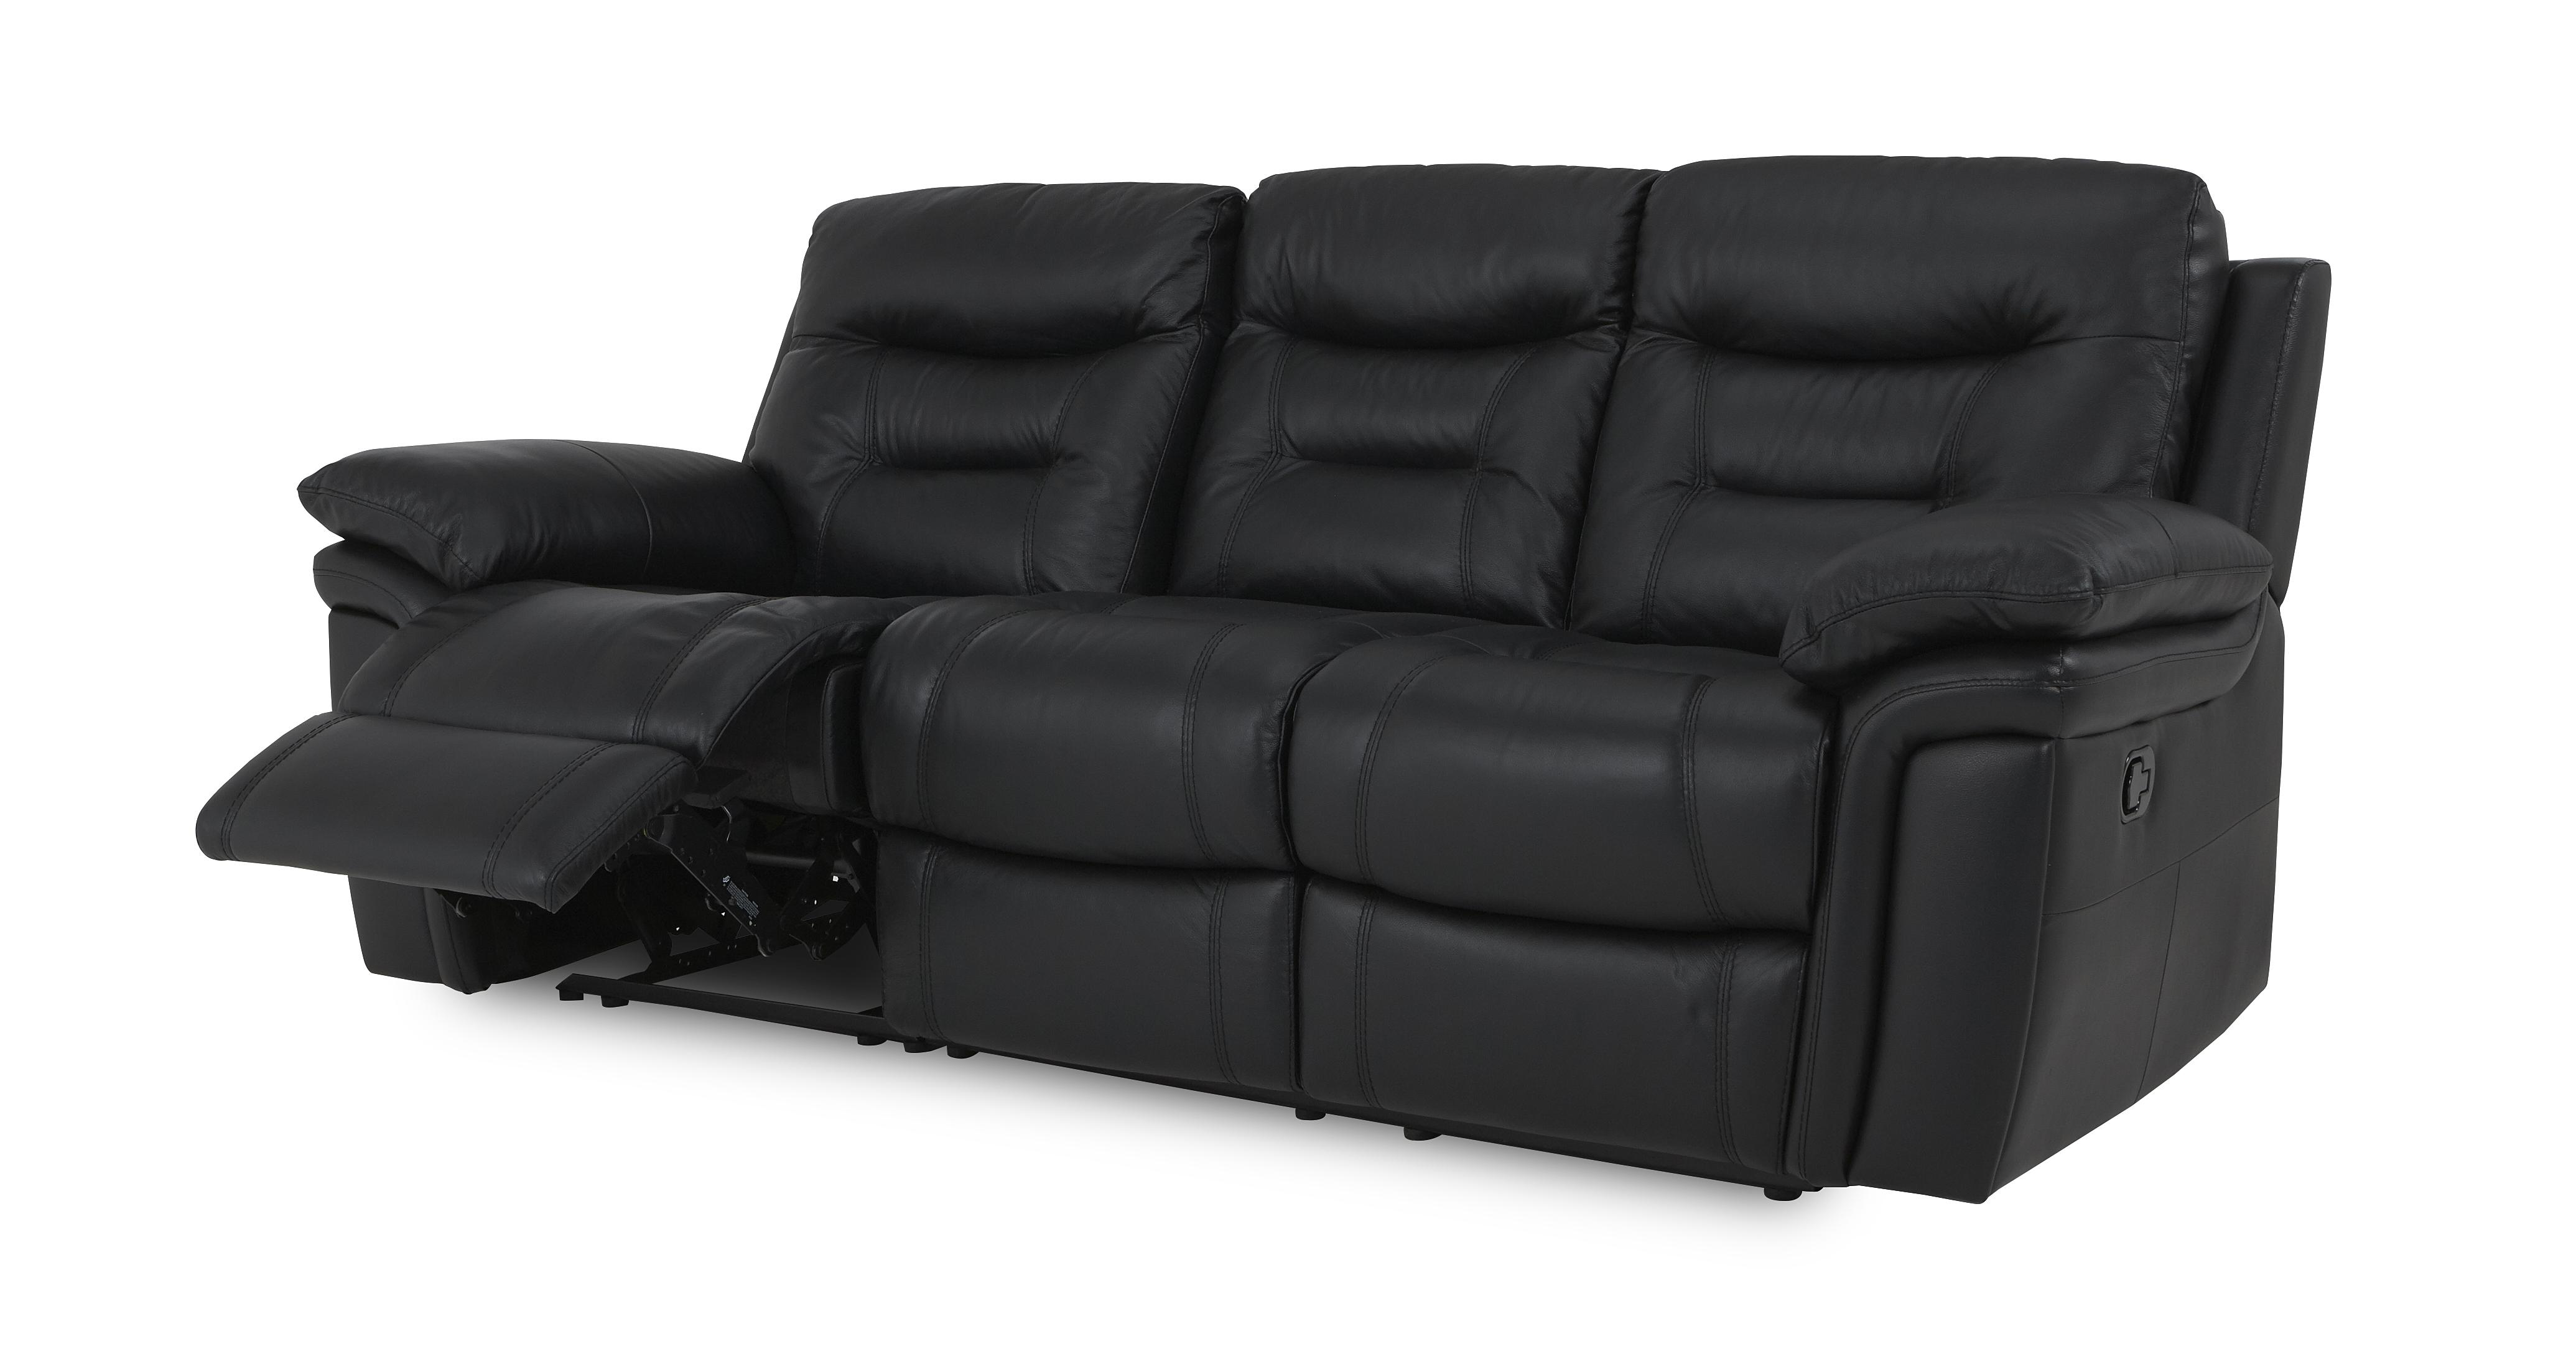 dfs recliner sofa bed ashley furniture black leather reclining evolution 3 seater manual